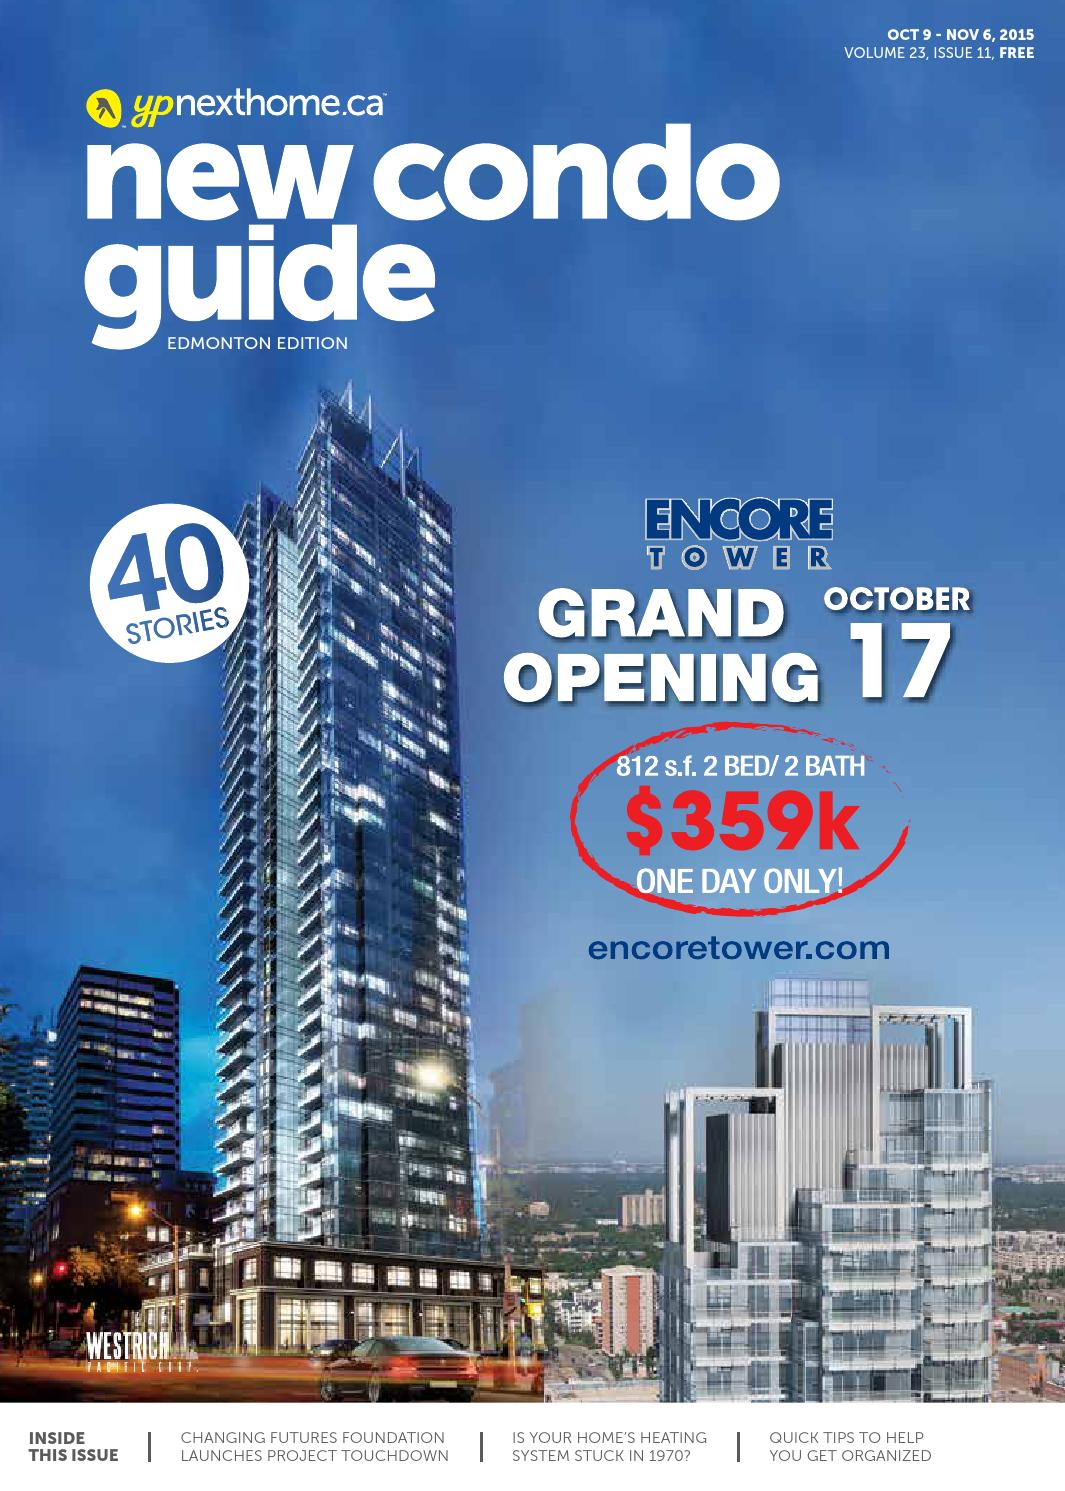 Edmonton New Condo Guide - Oct 9, 2015 by NextHome - issuu